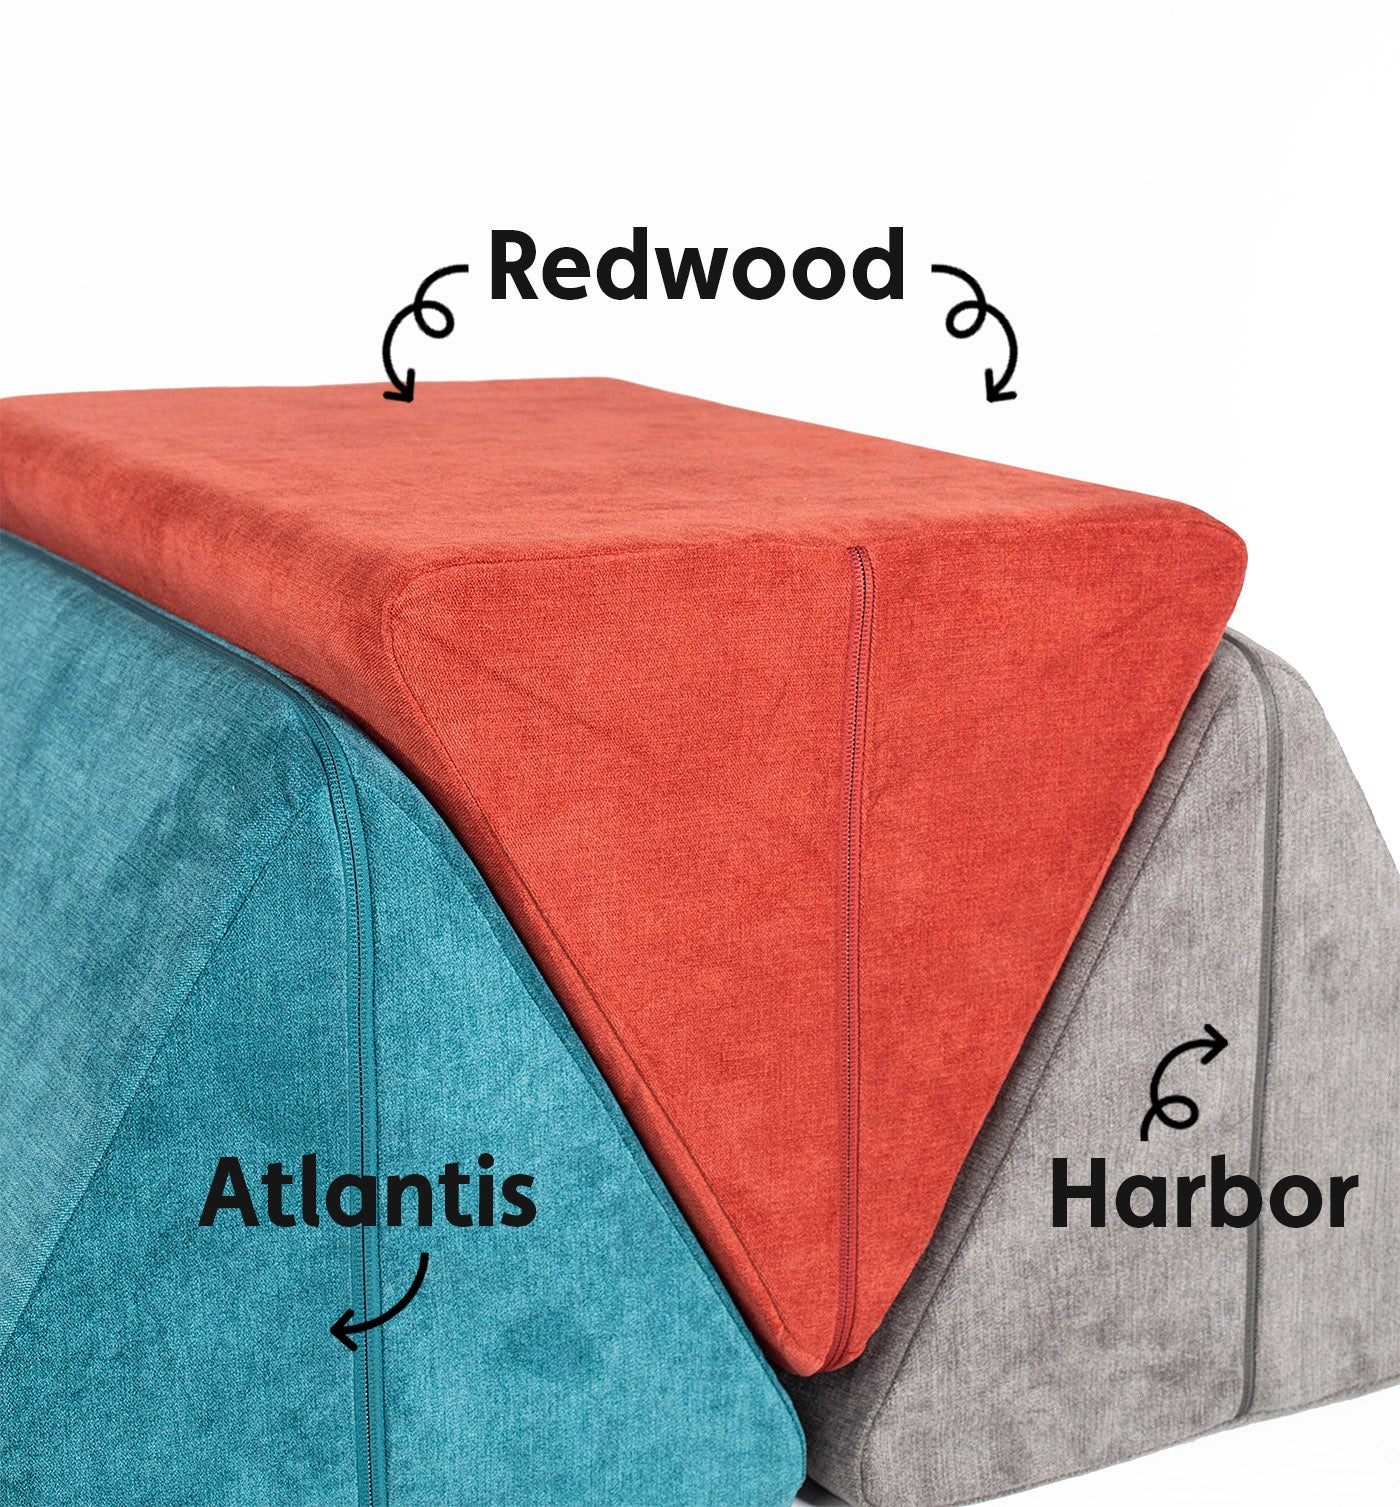 Atlantis, Redwood, and Harbor pillows wedged side-by-side, labeled with names and arrows